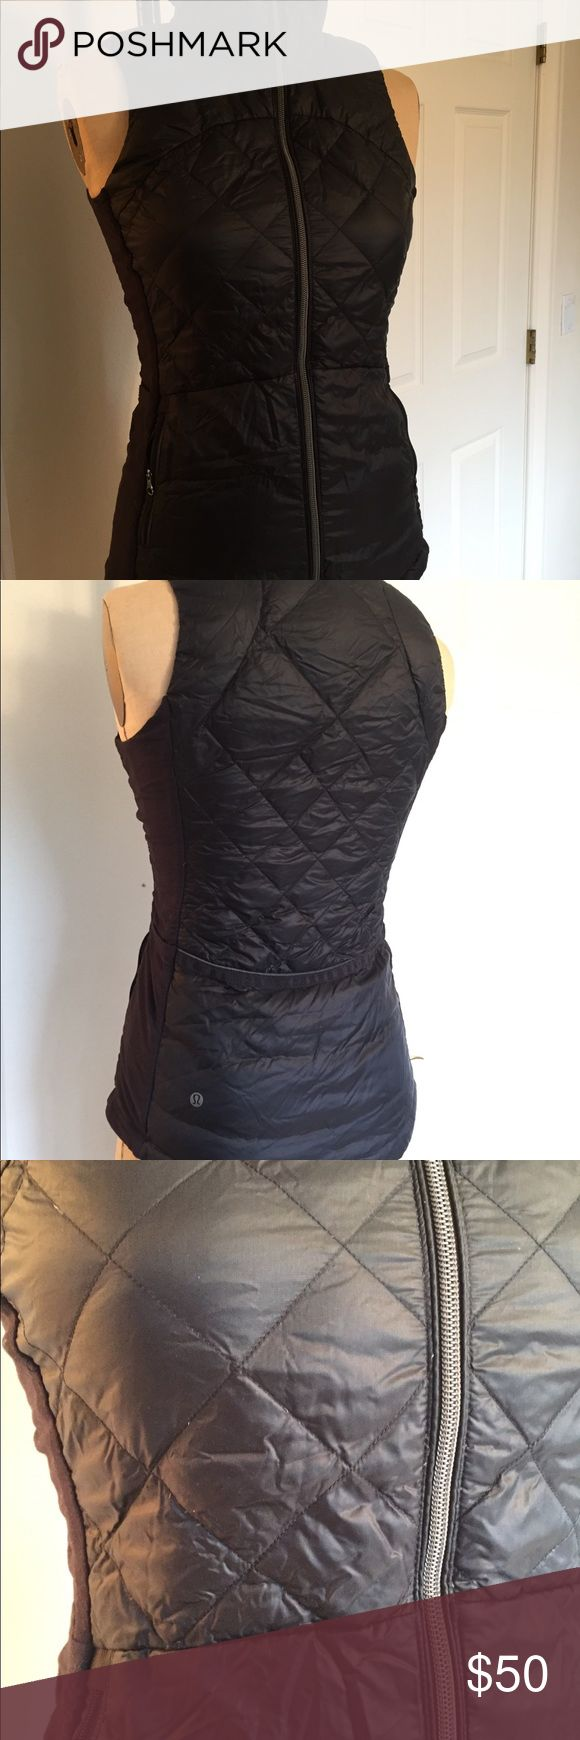 Lululemon Vest Running Goose Down Lulu vest down for a run black   💯 goose down vest owned a year  One small mark at inside collar see pic Normal wear and tear  Message with any questions lululemon athletica Jackets & Coats Vests